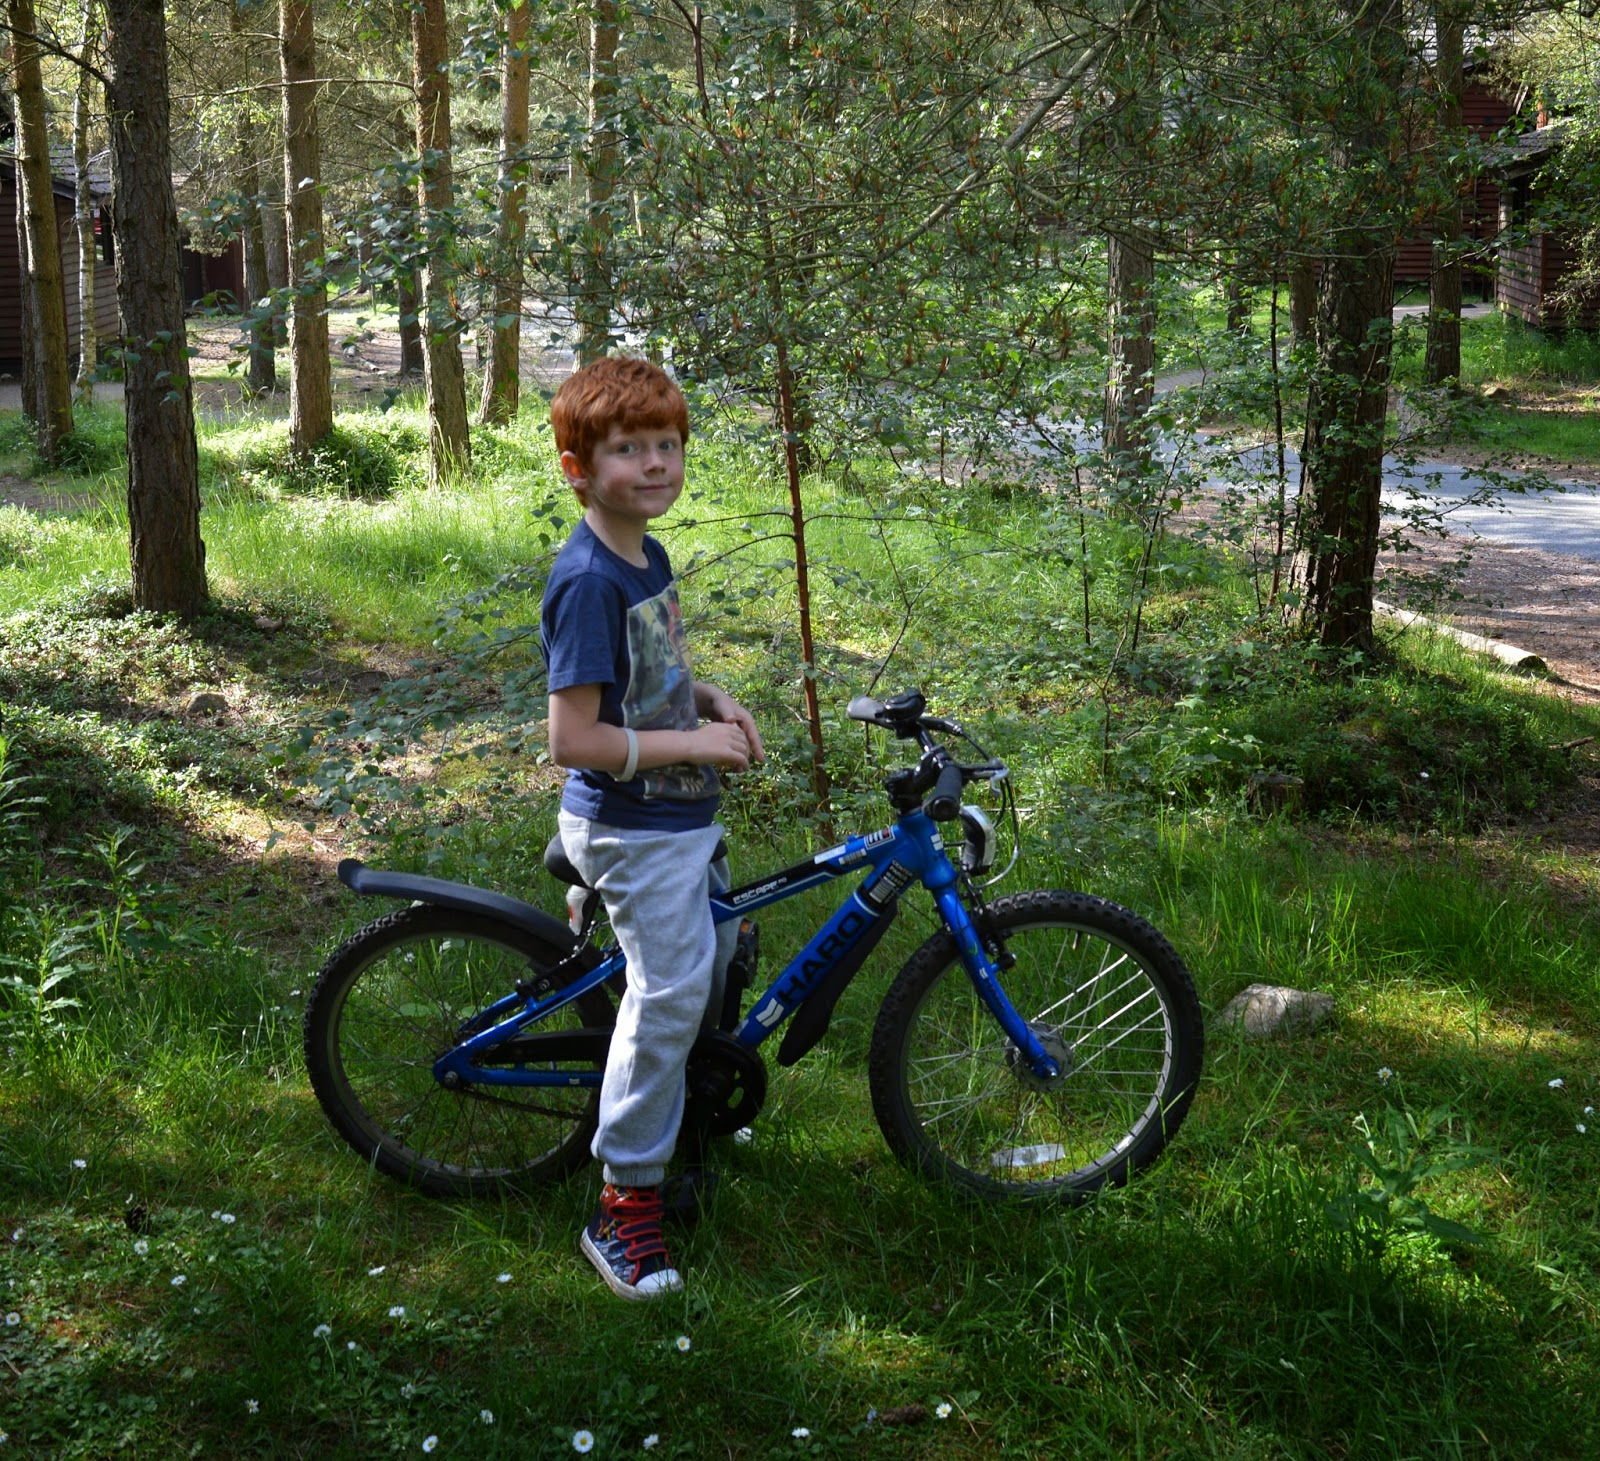 Three great ideas for a little adventure - cycling through the woods